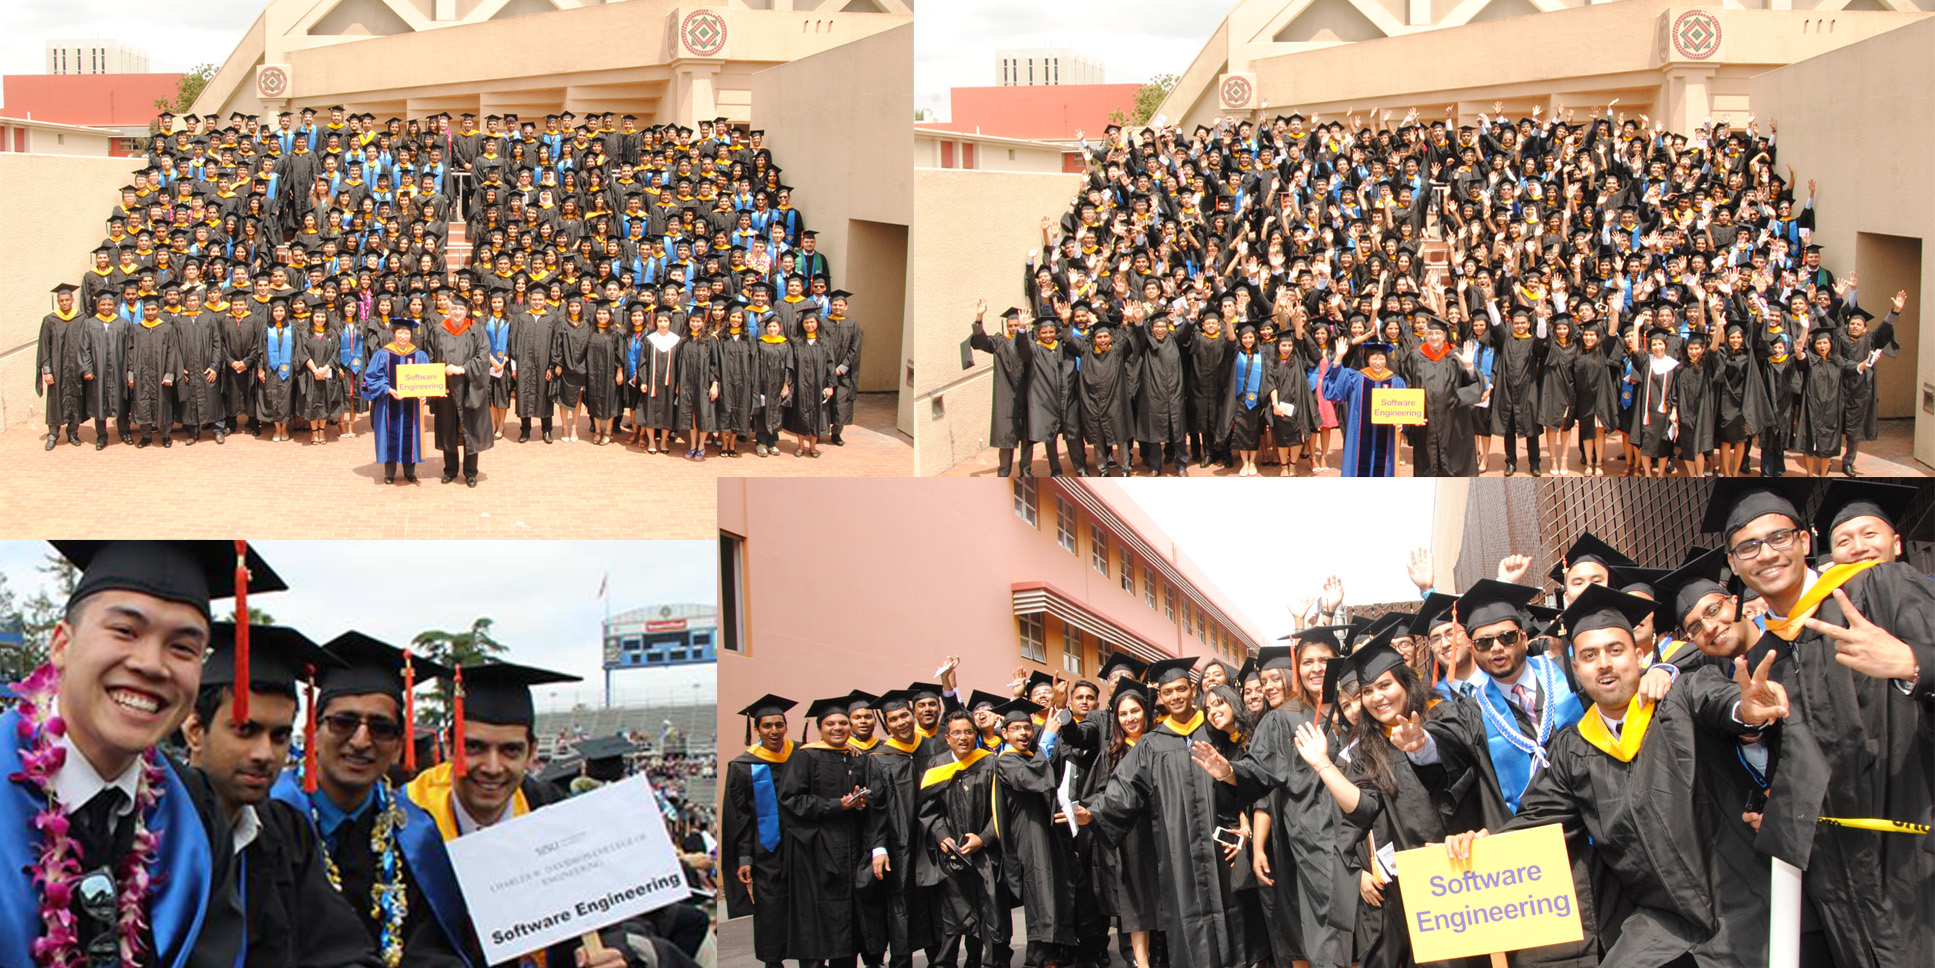 Sp2015 Software Engineering Graduates